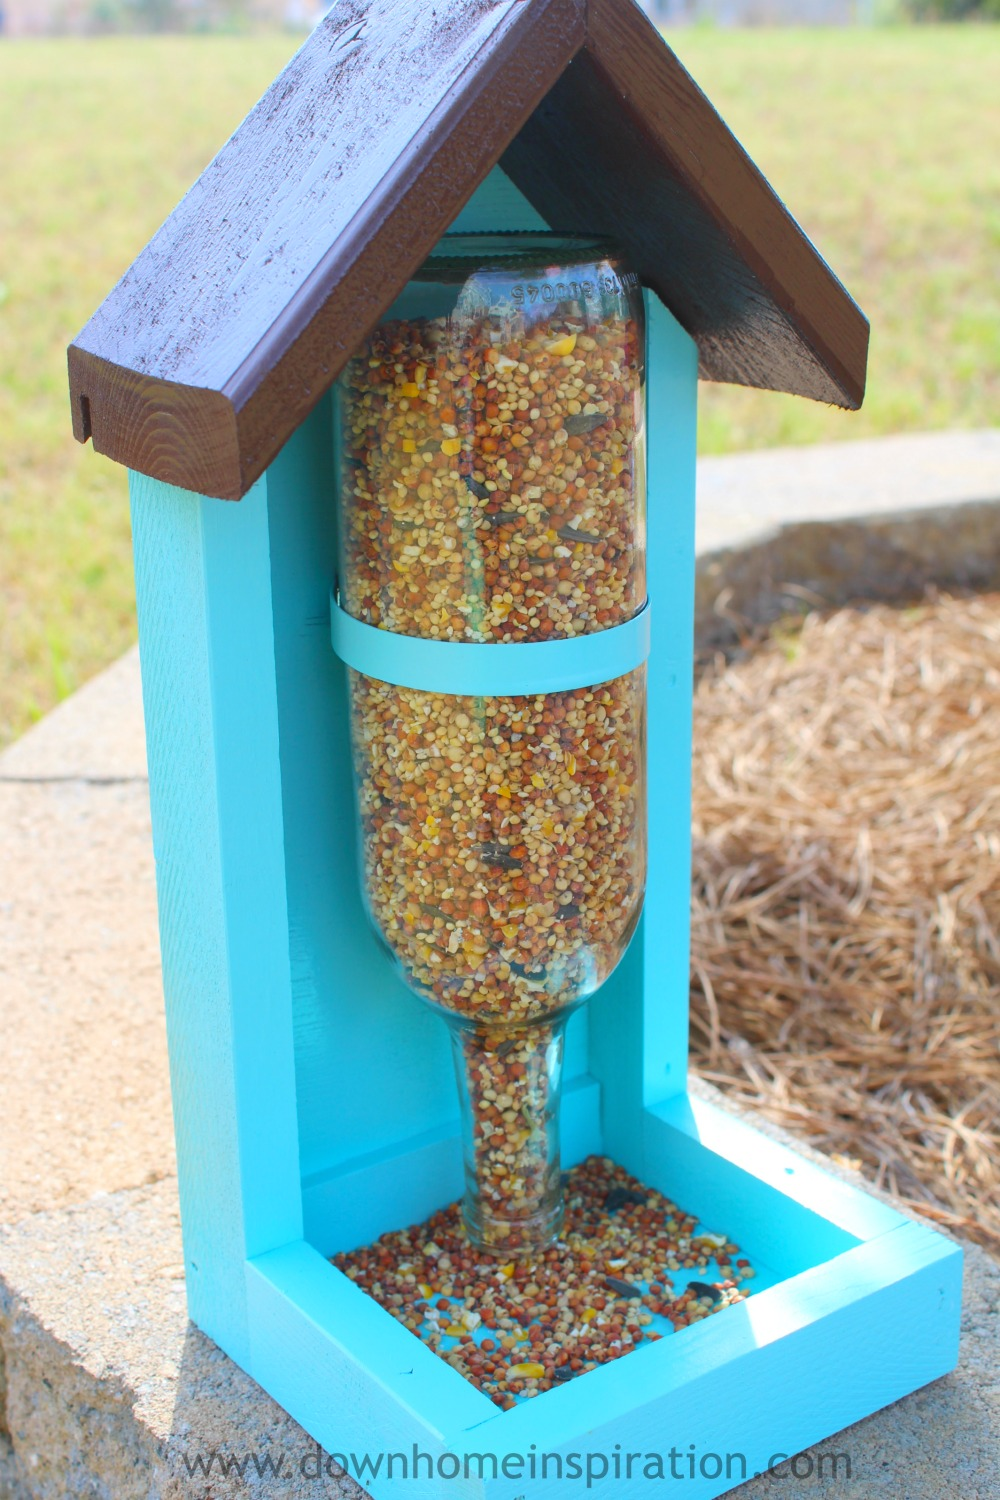 How To Make A Wine Bottle Bird Feeder Down Home Inspiration